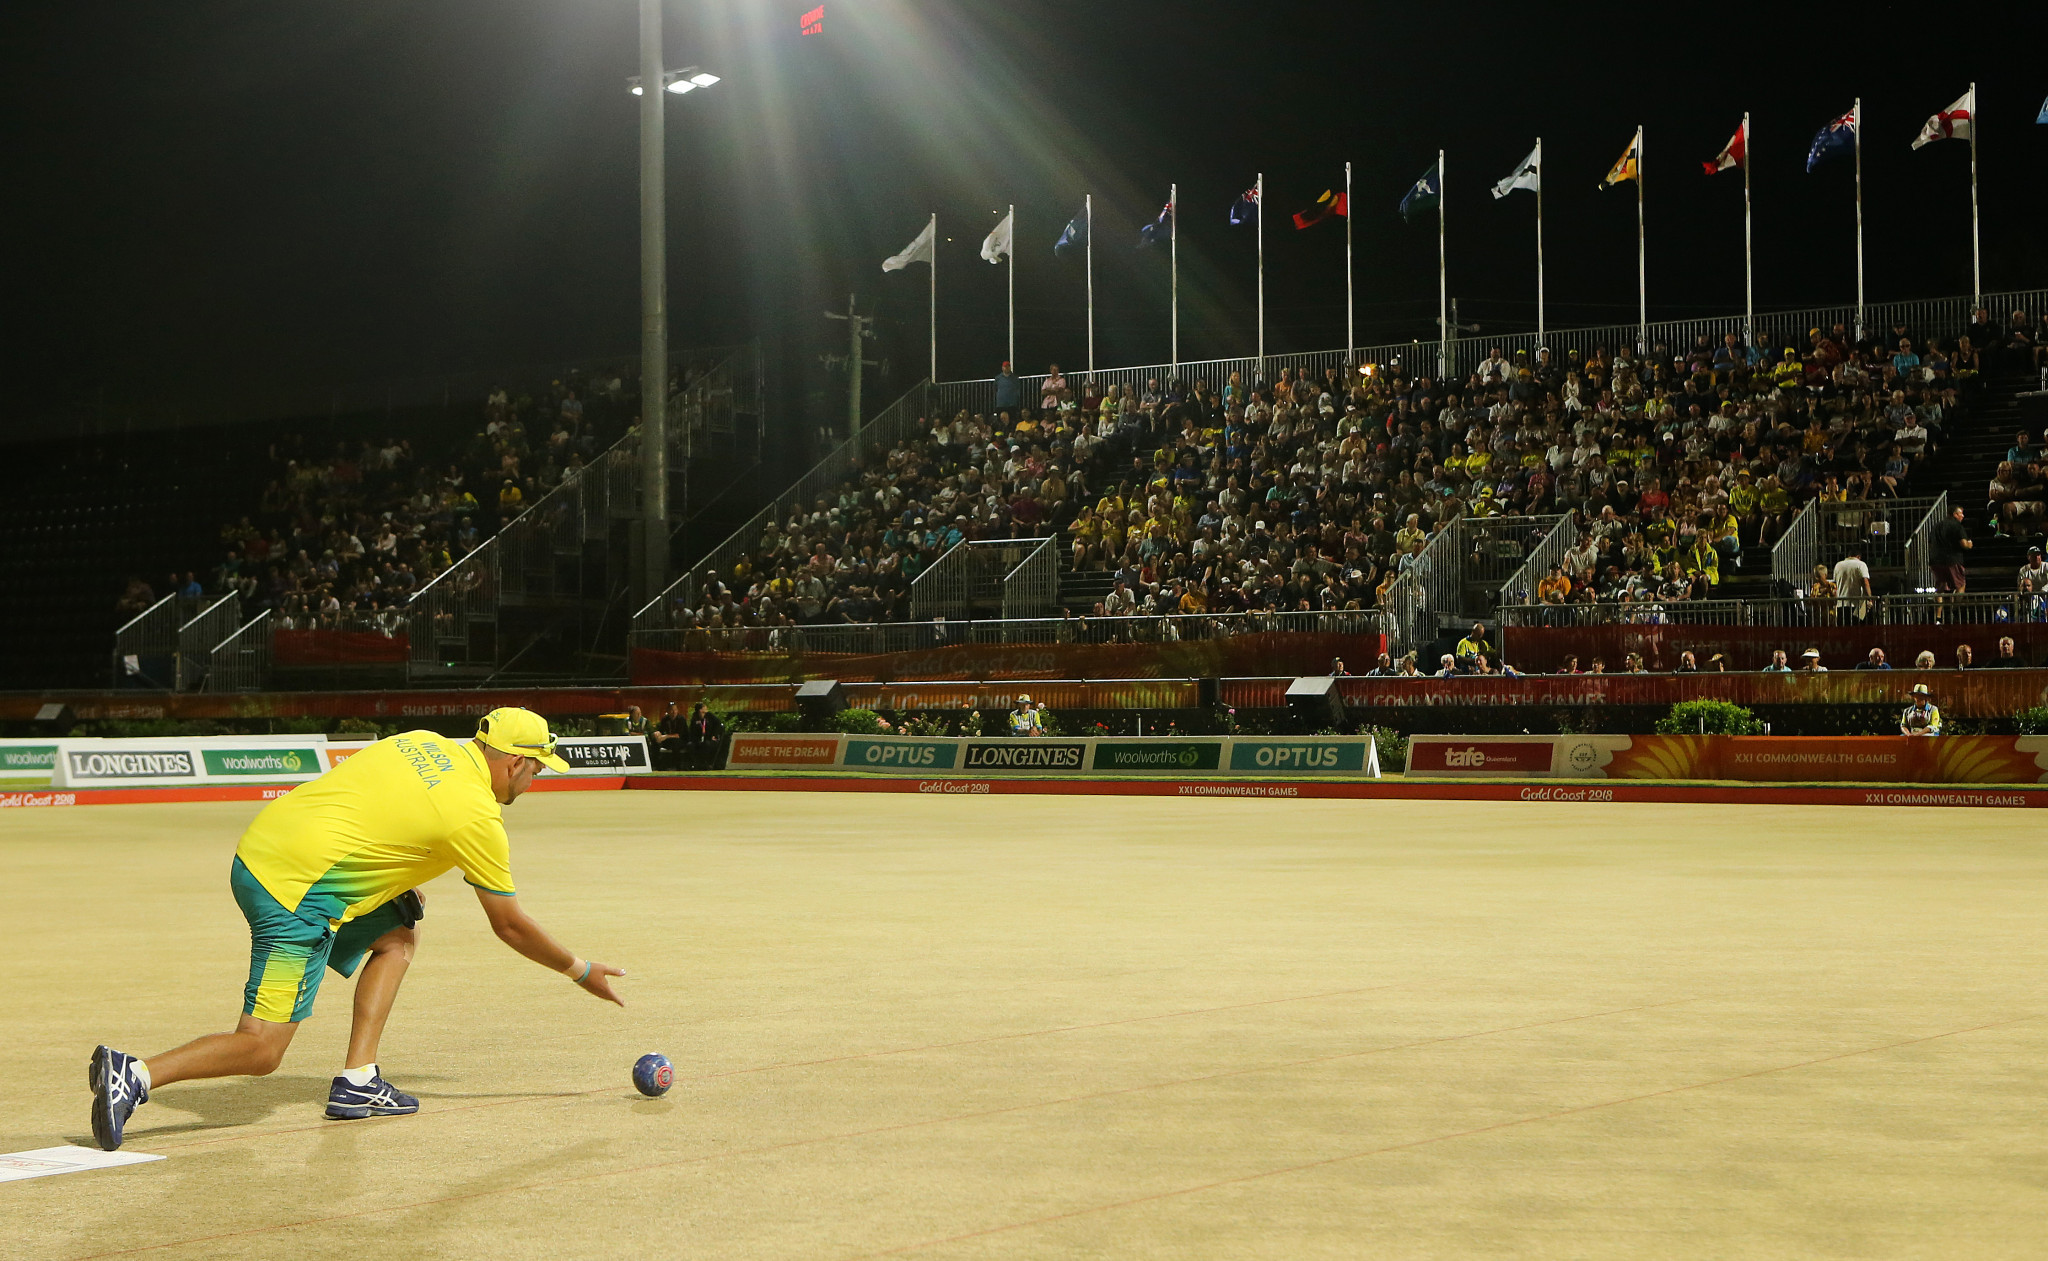 Changes planned for World Bowls Championships with 2020 edition officially cancelled